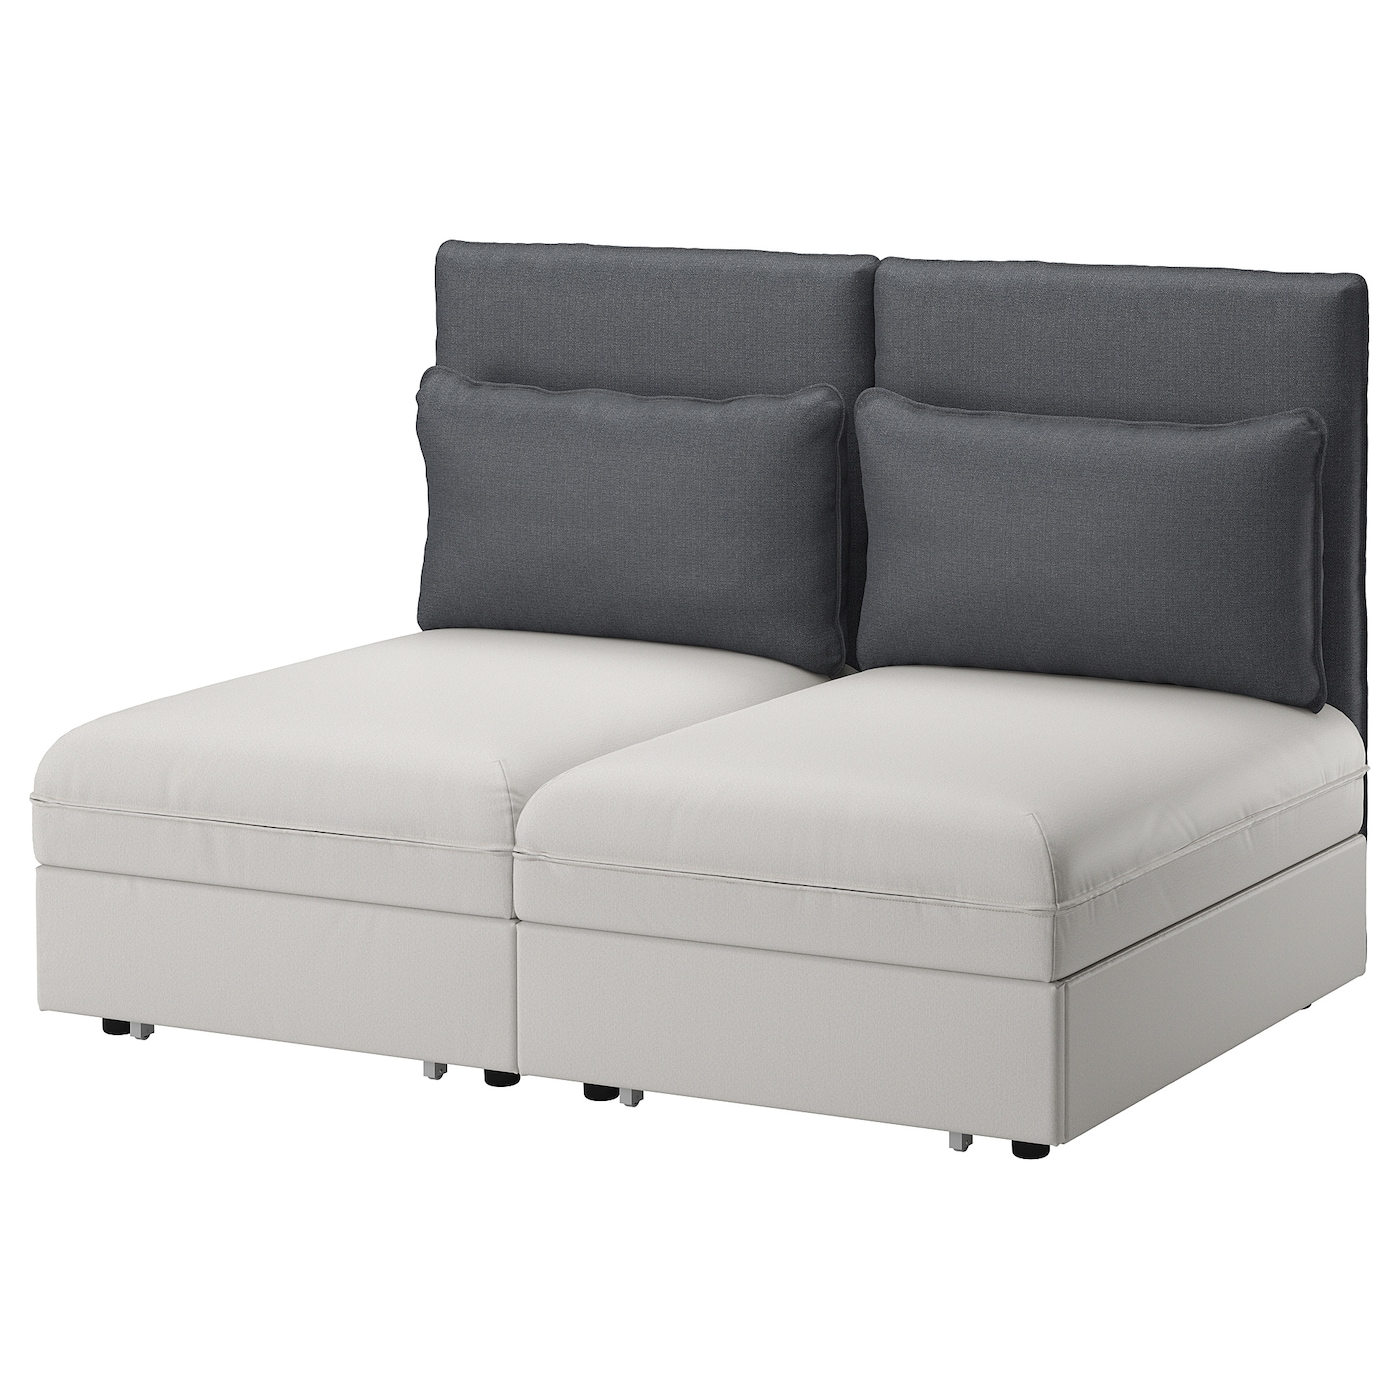 IKEA VALLENTUNA 2 Seat Sofa With Bed This Combination Converts Easily Into  A Bed.